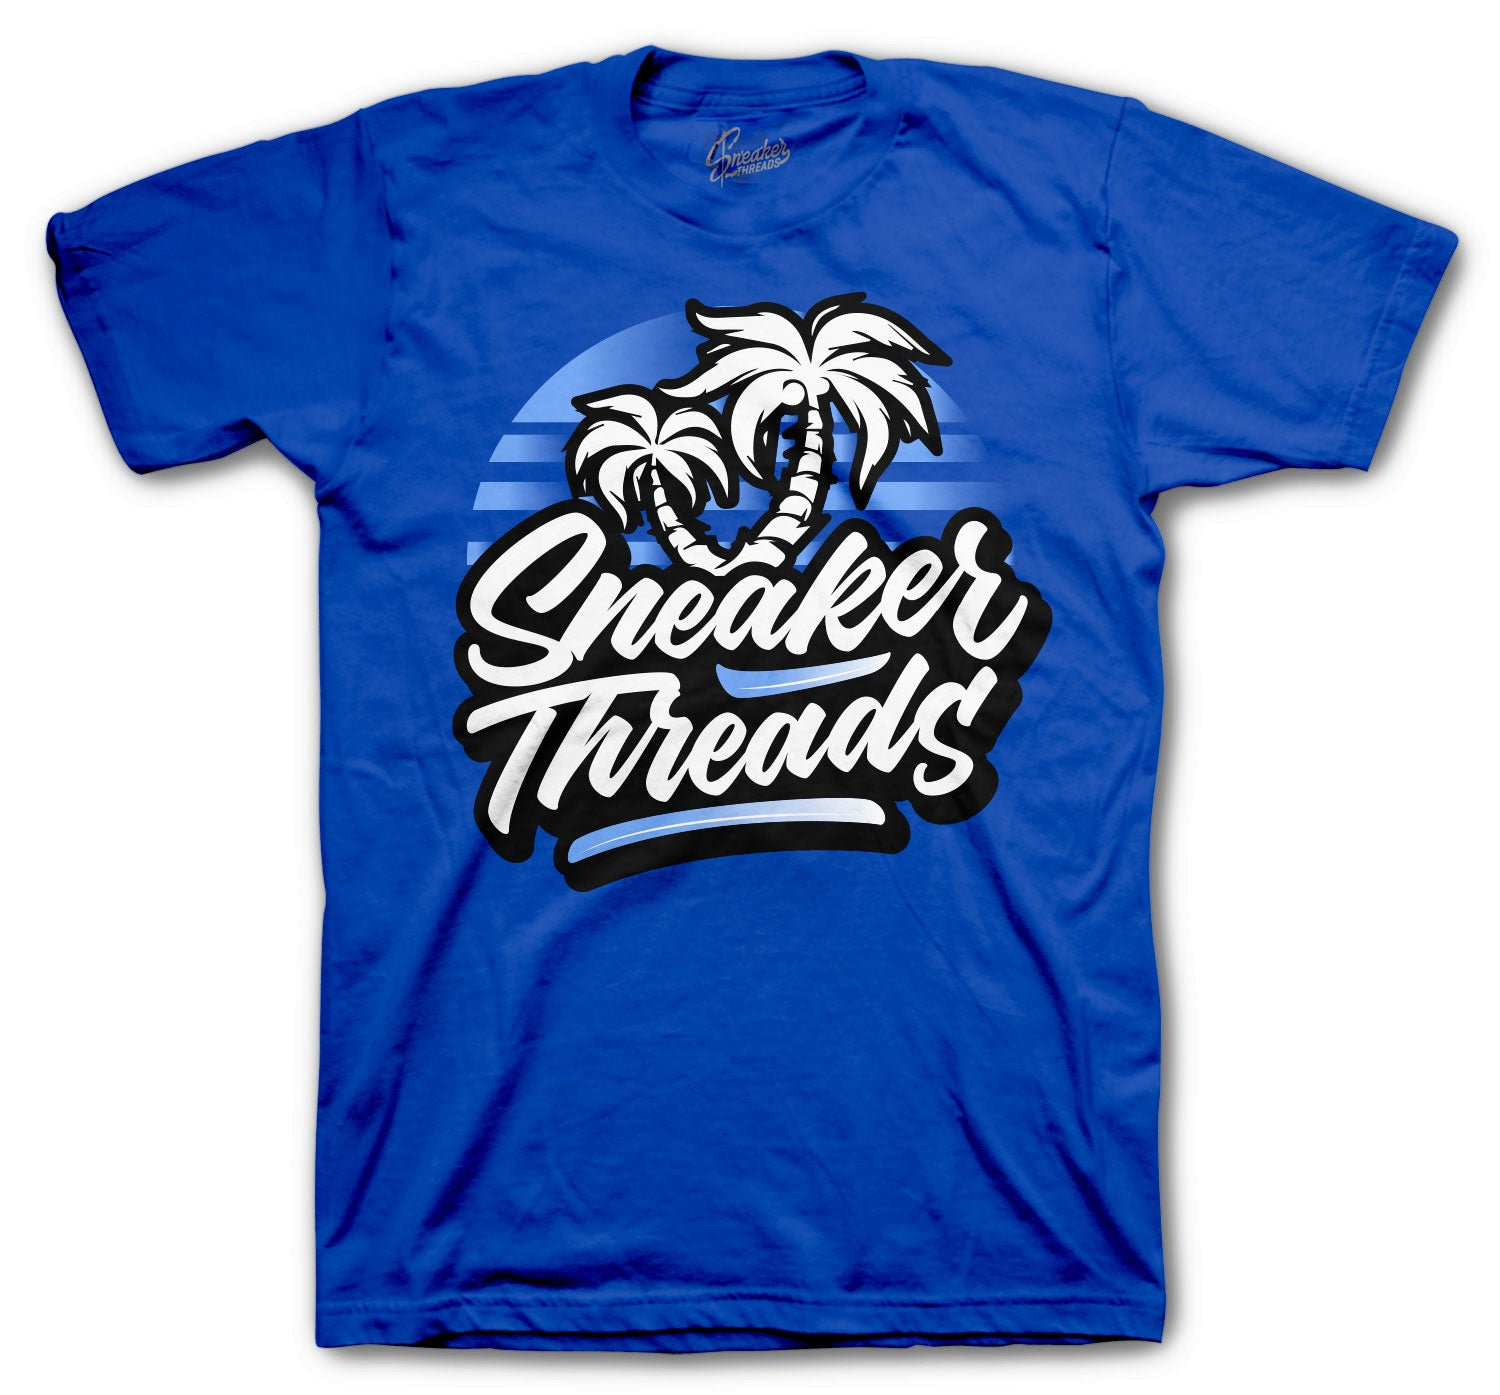 Jordan 1 Hyper Royal Shirt - ST Palms - Royal